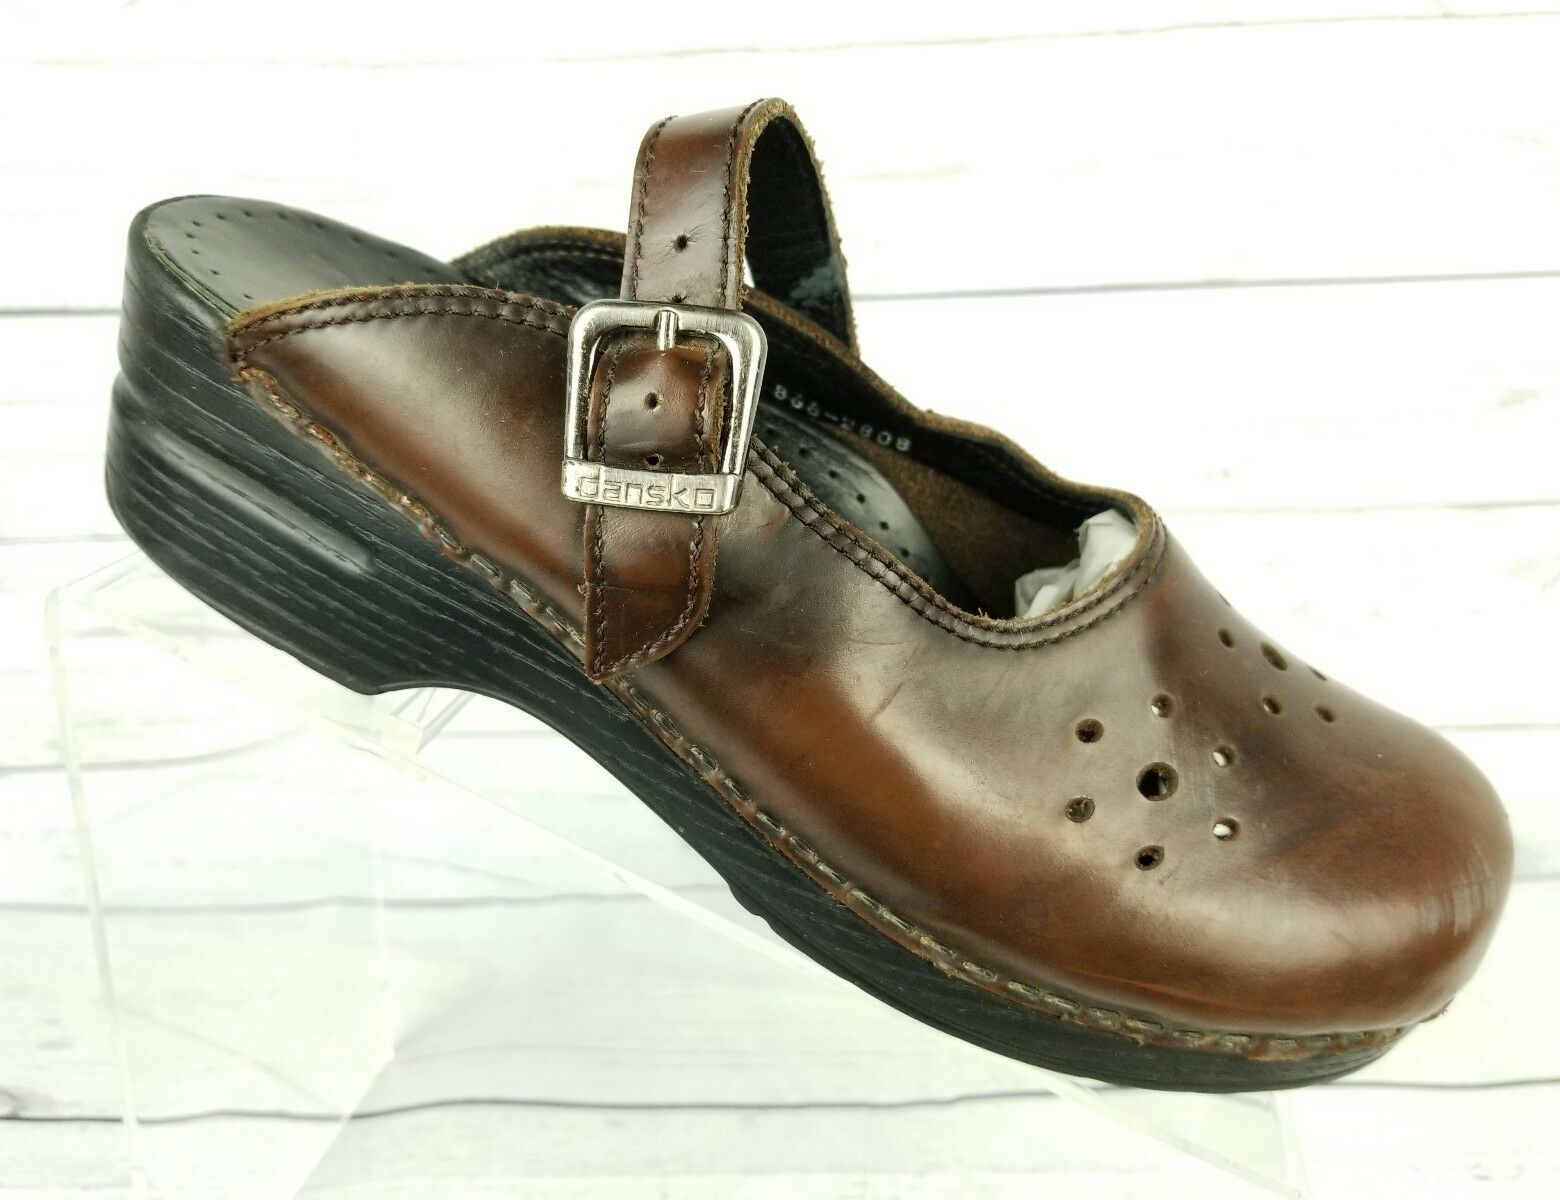 Dansko Womens Size 10.5 Chocolate Brown Perforated Leather Mary Jane Clogs